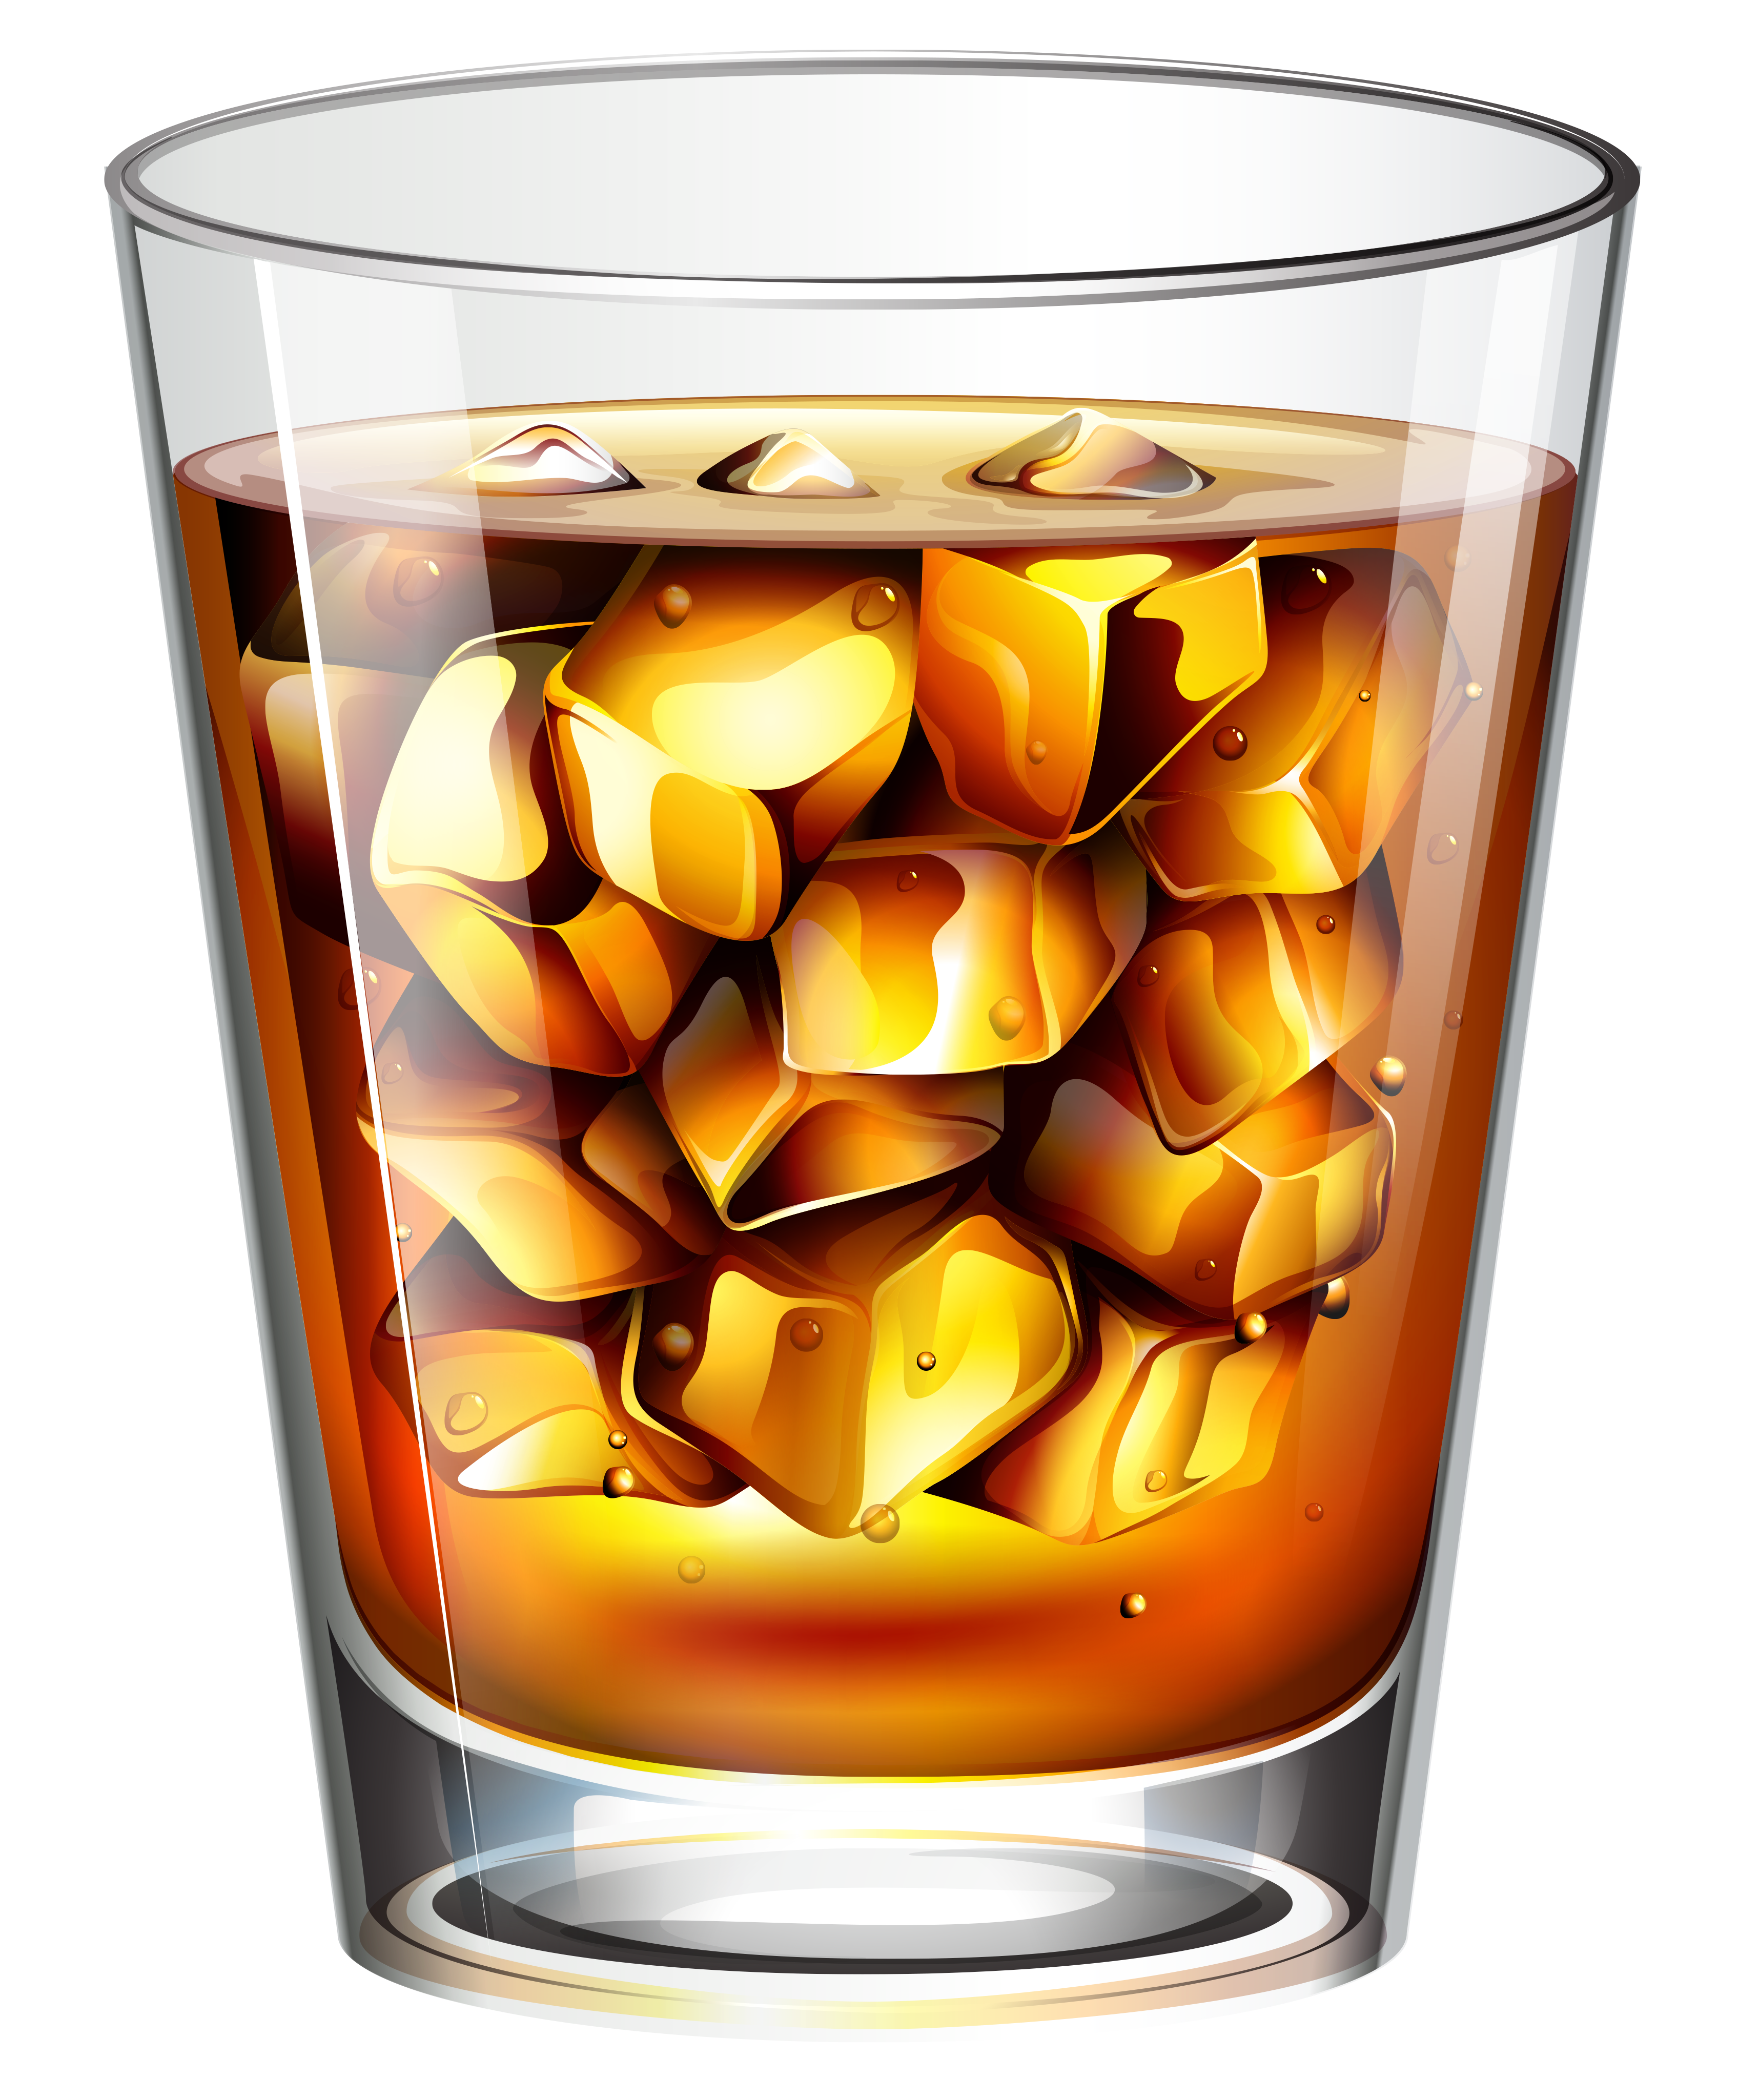 Cocktails whisky glass